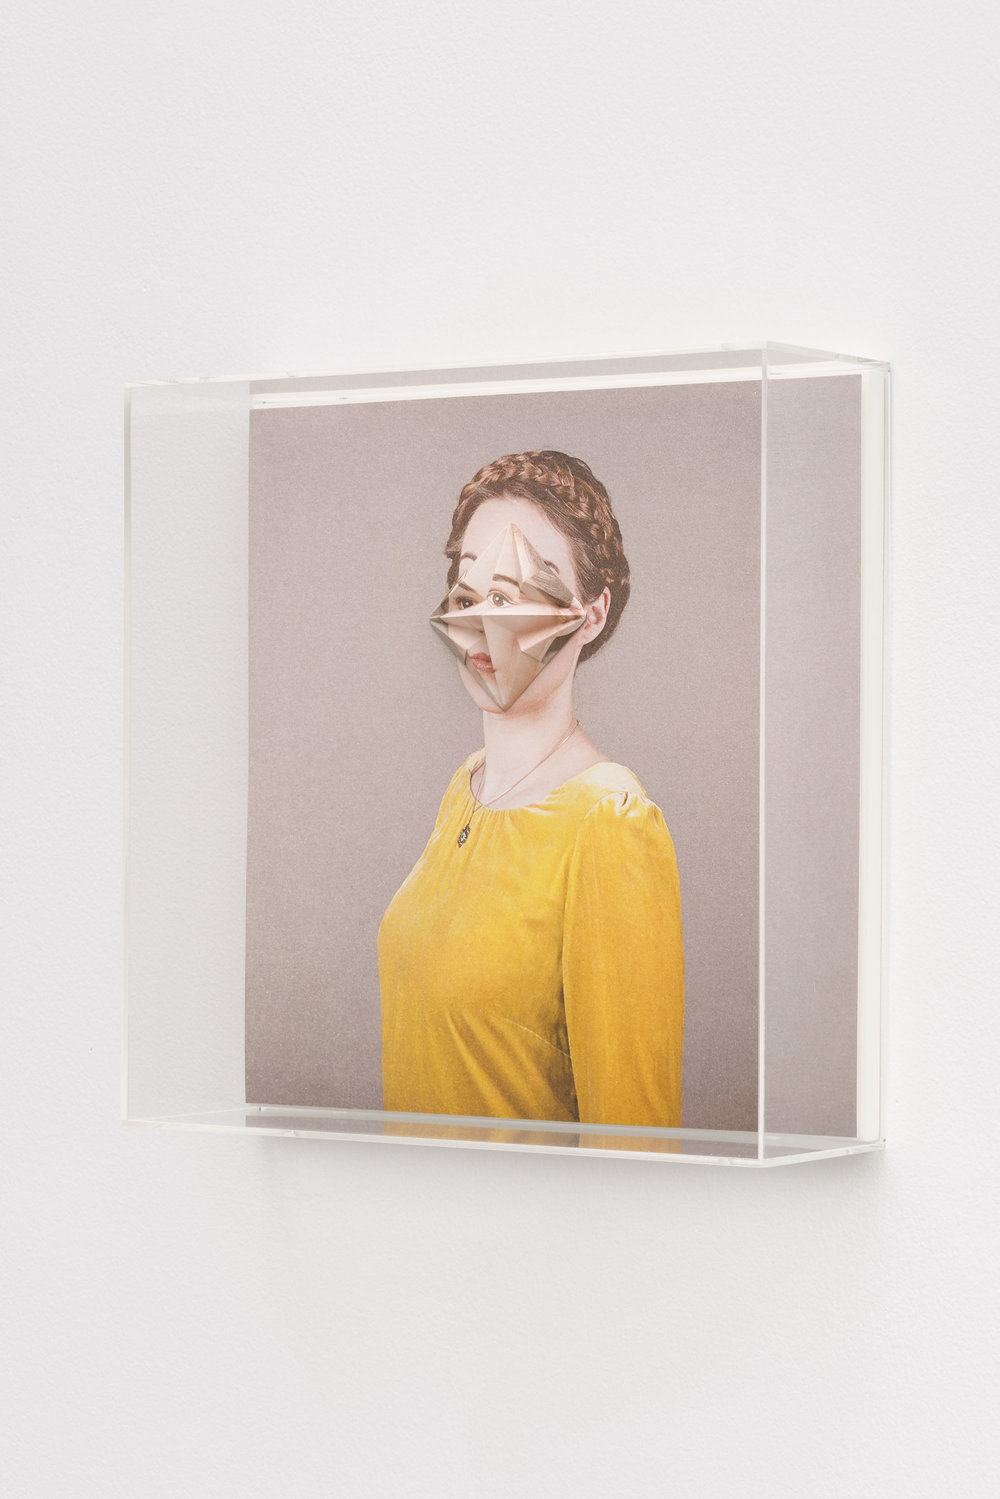 Alma Haser,  Patient No. 33 HD (Ingrid) , 2016  Digital pigment print with folded digital pigment print sculpture, plexiglass box, 30 x 30 x 10 cm (approx. 12 x 12 x 4 in), edition of 5   Inquire